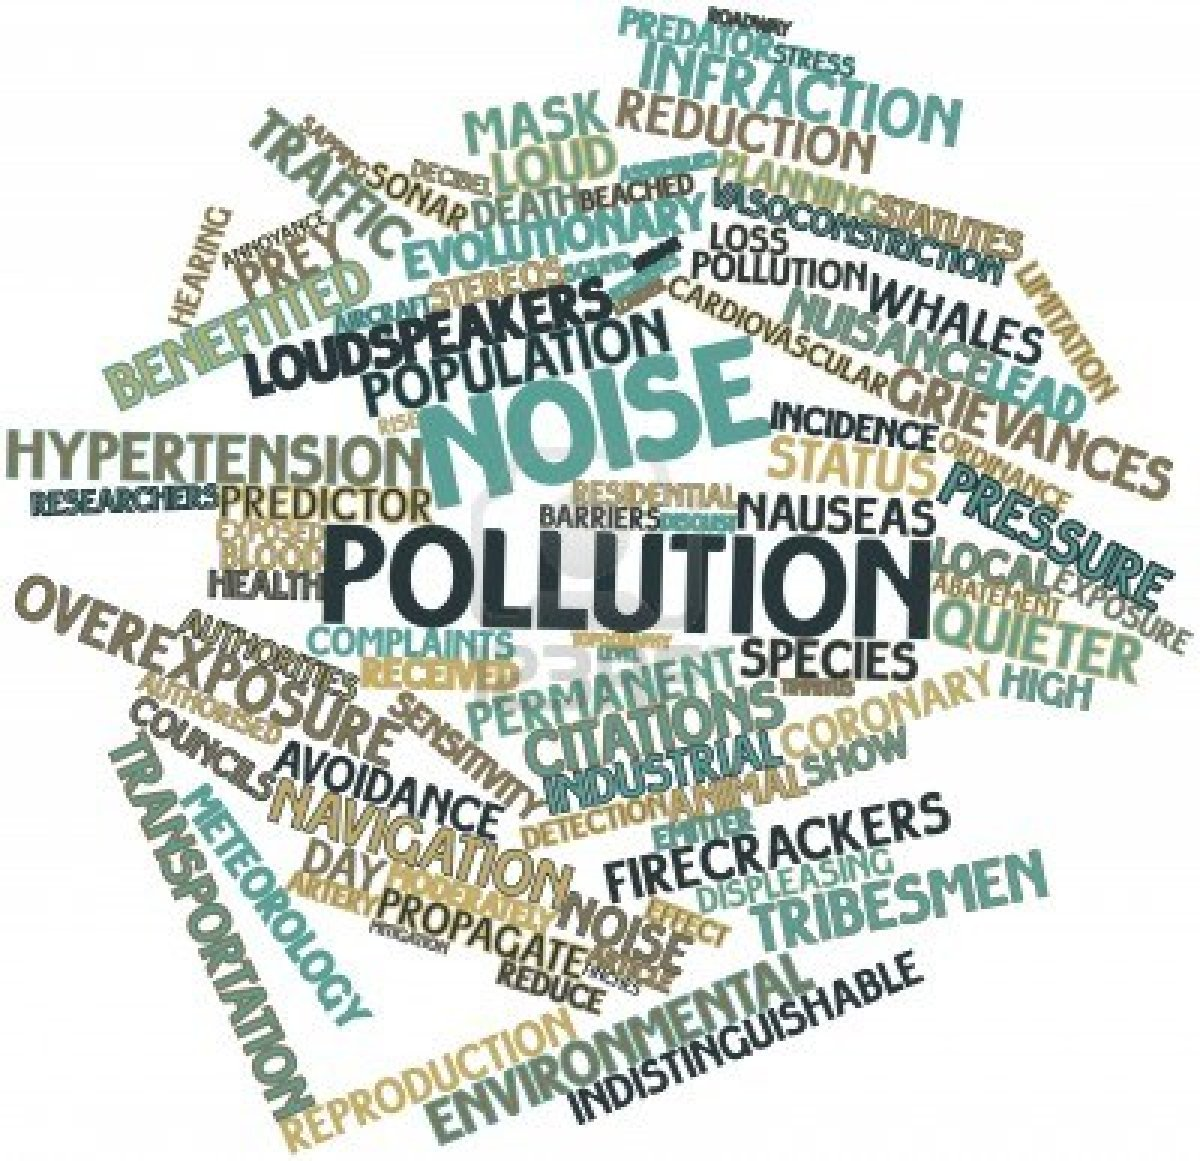 noise pollution essay for kids Essays - largest database of quality sample essays and research papers on air pollution essay for kids.